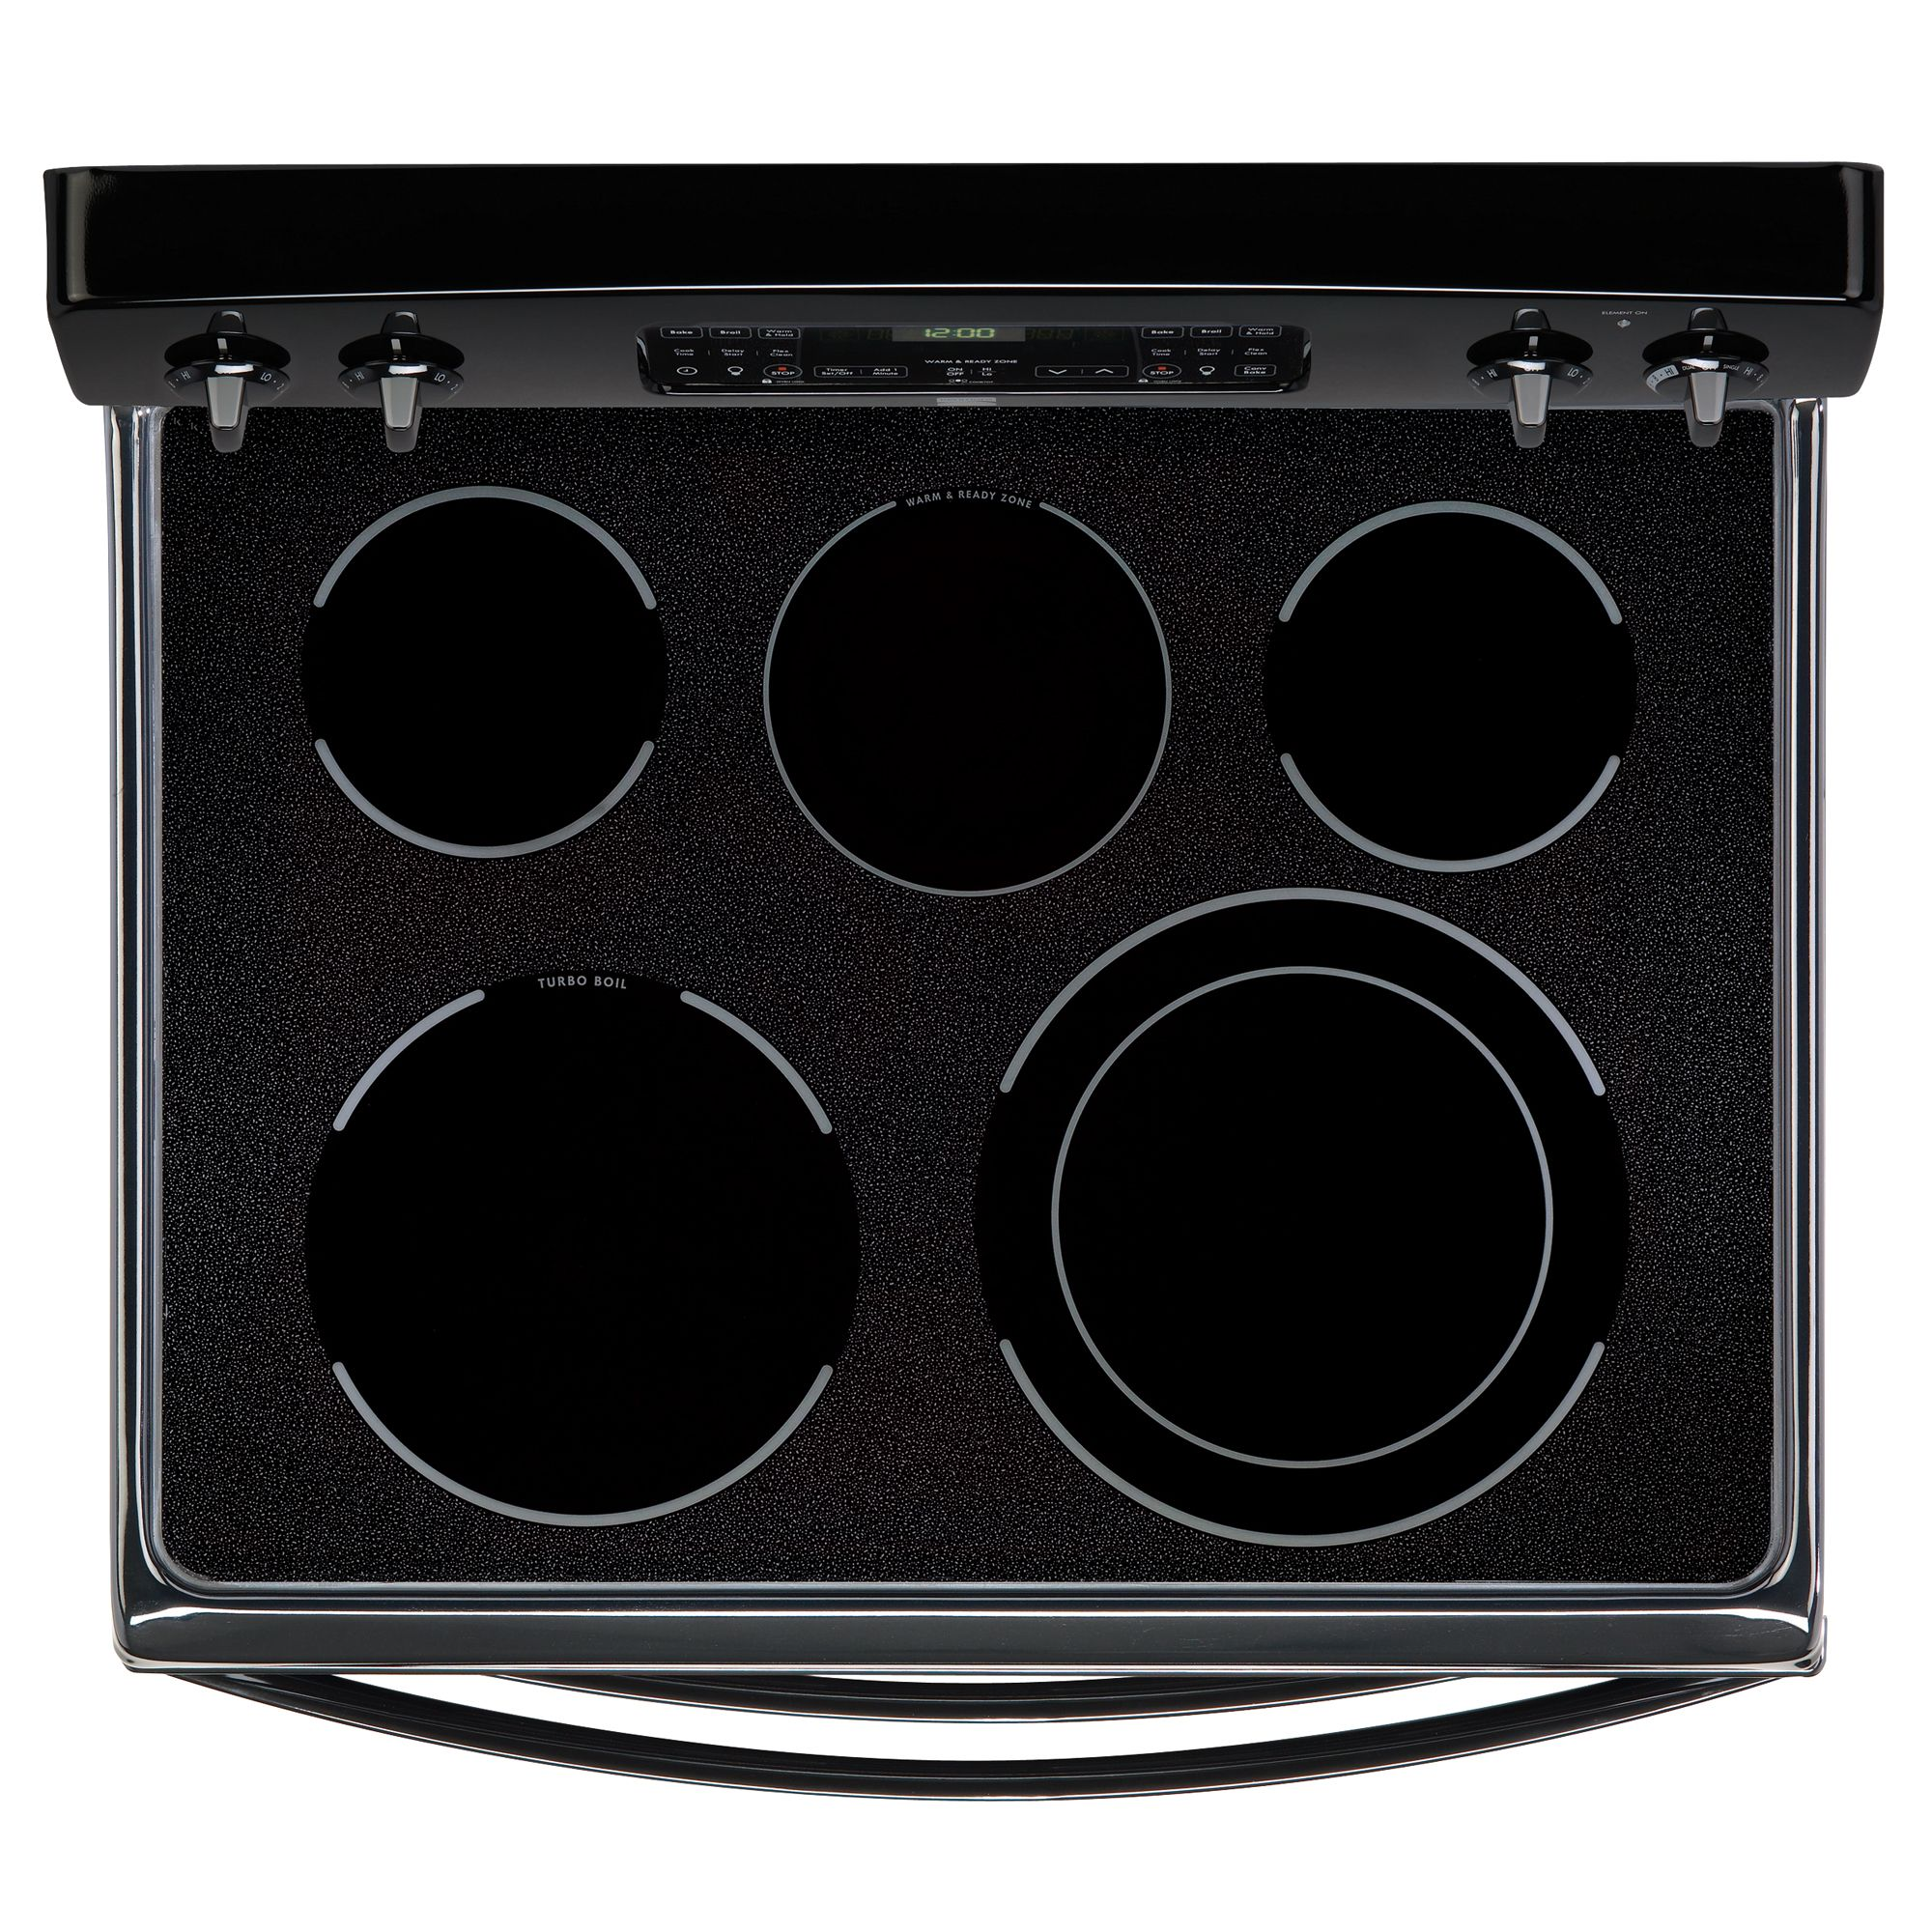 Kenmore 6.64 cu. ft. Double-Oven Electric Range w/ Convection - Black